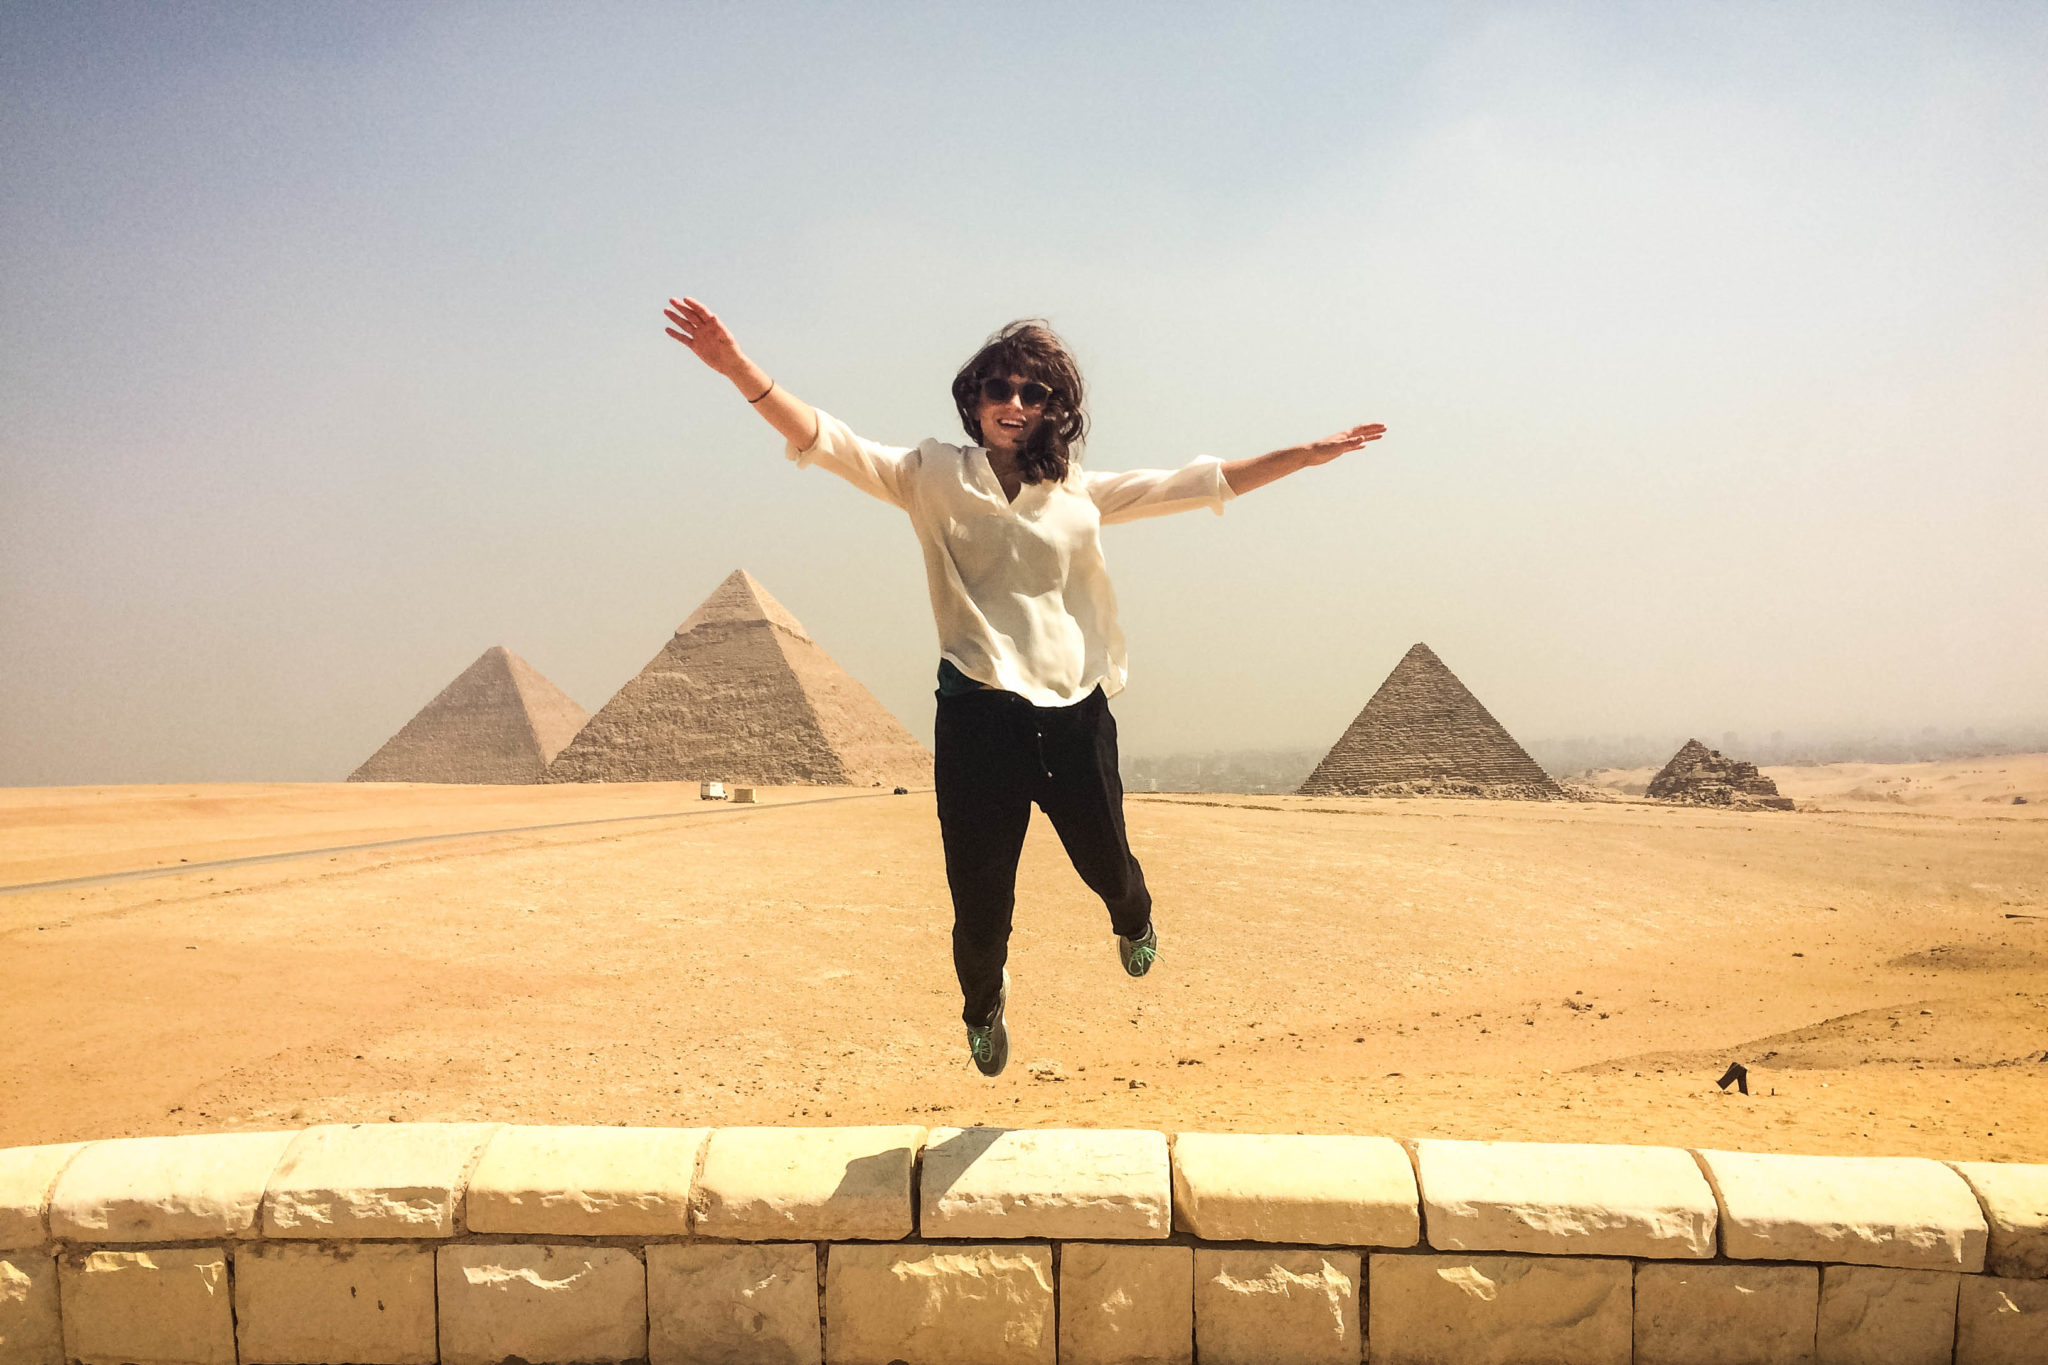 Jumping in front of the Pyramids of Giza in Egypt